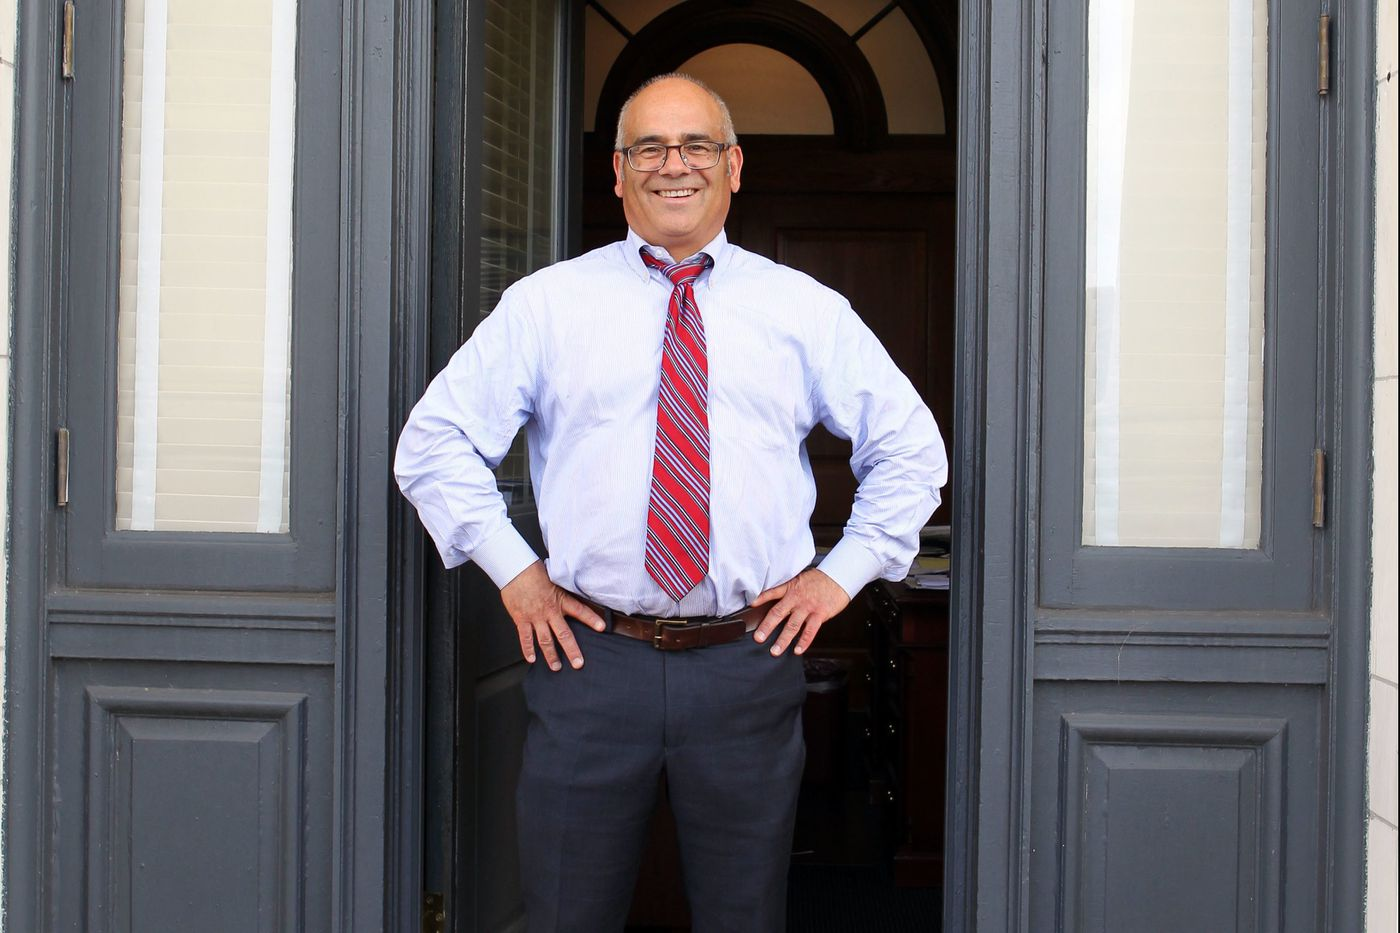 Trenton's first openly gay mayor an early backer of medical marijuana, marriage equality